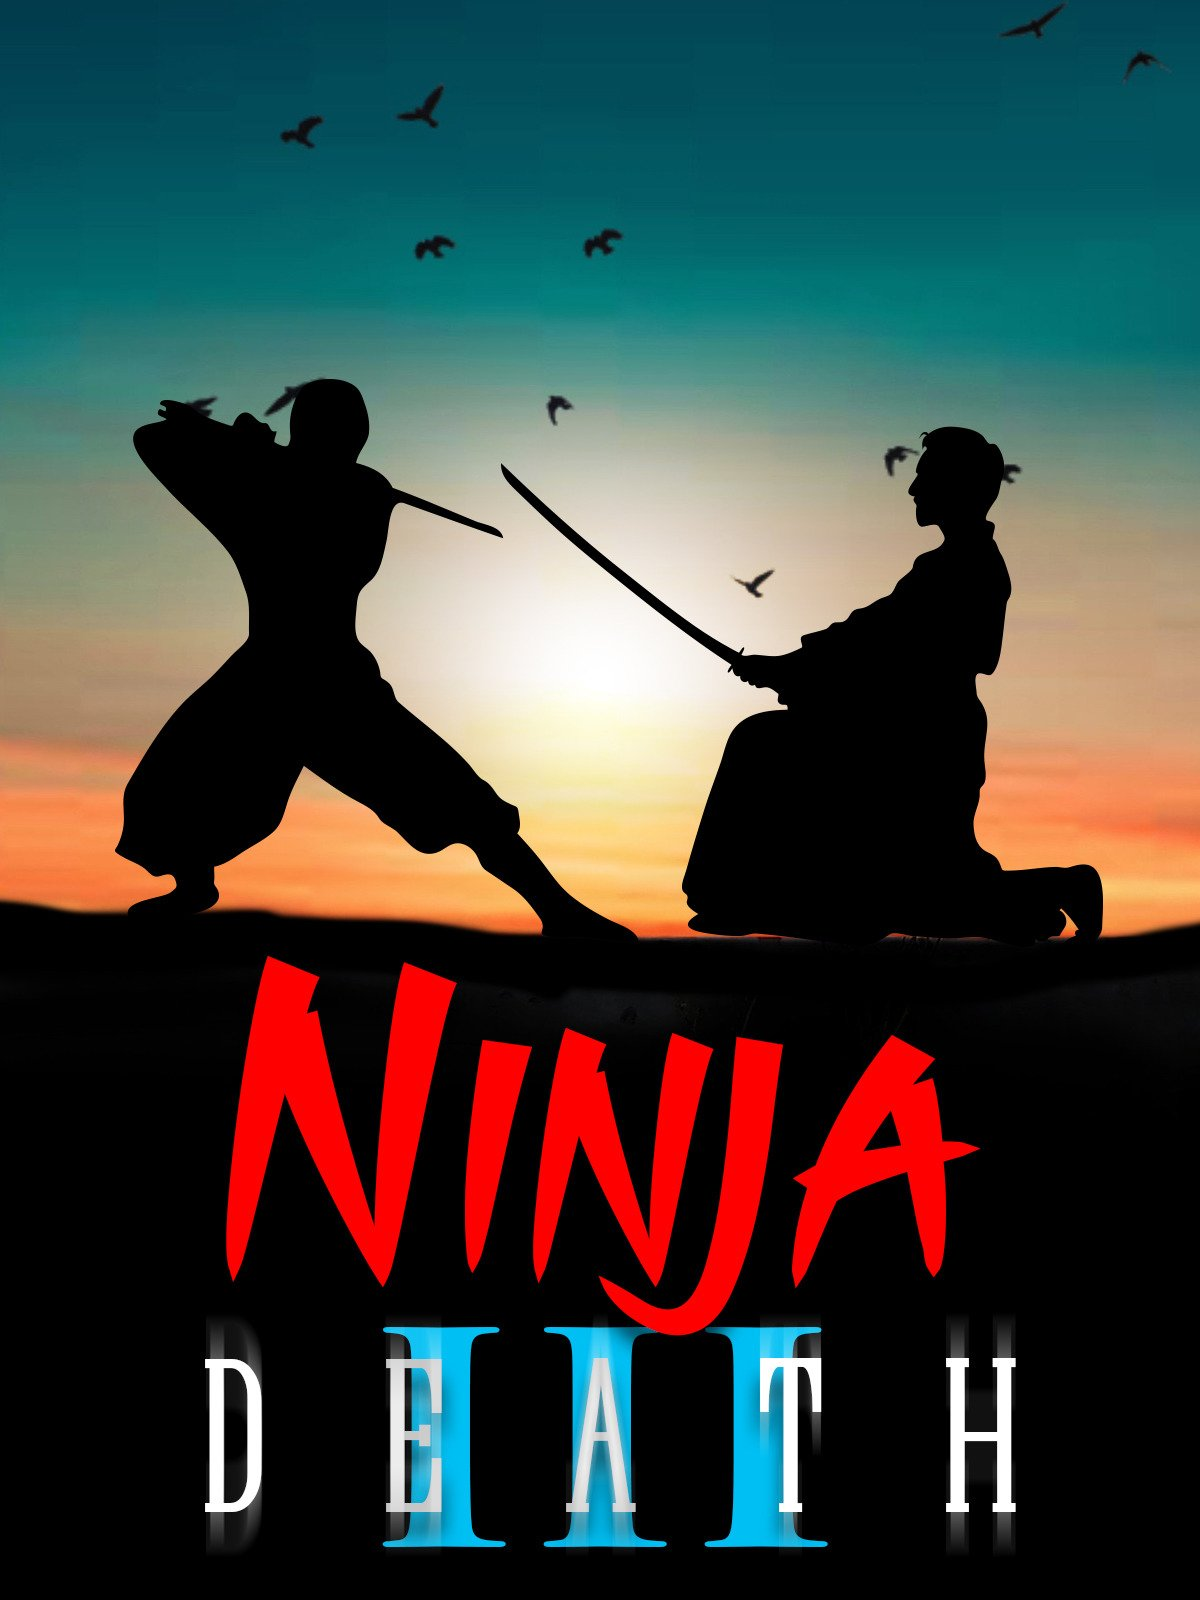 Ninja Death lll on Amazon Prime Instant Video UK